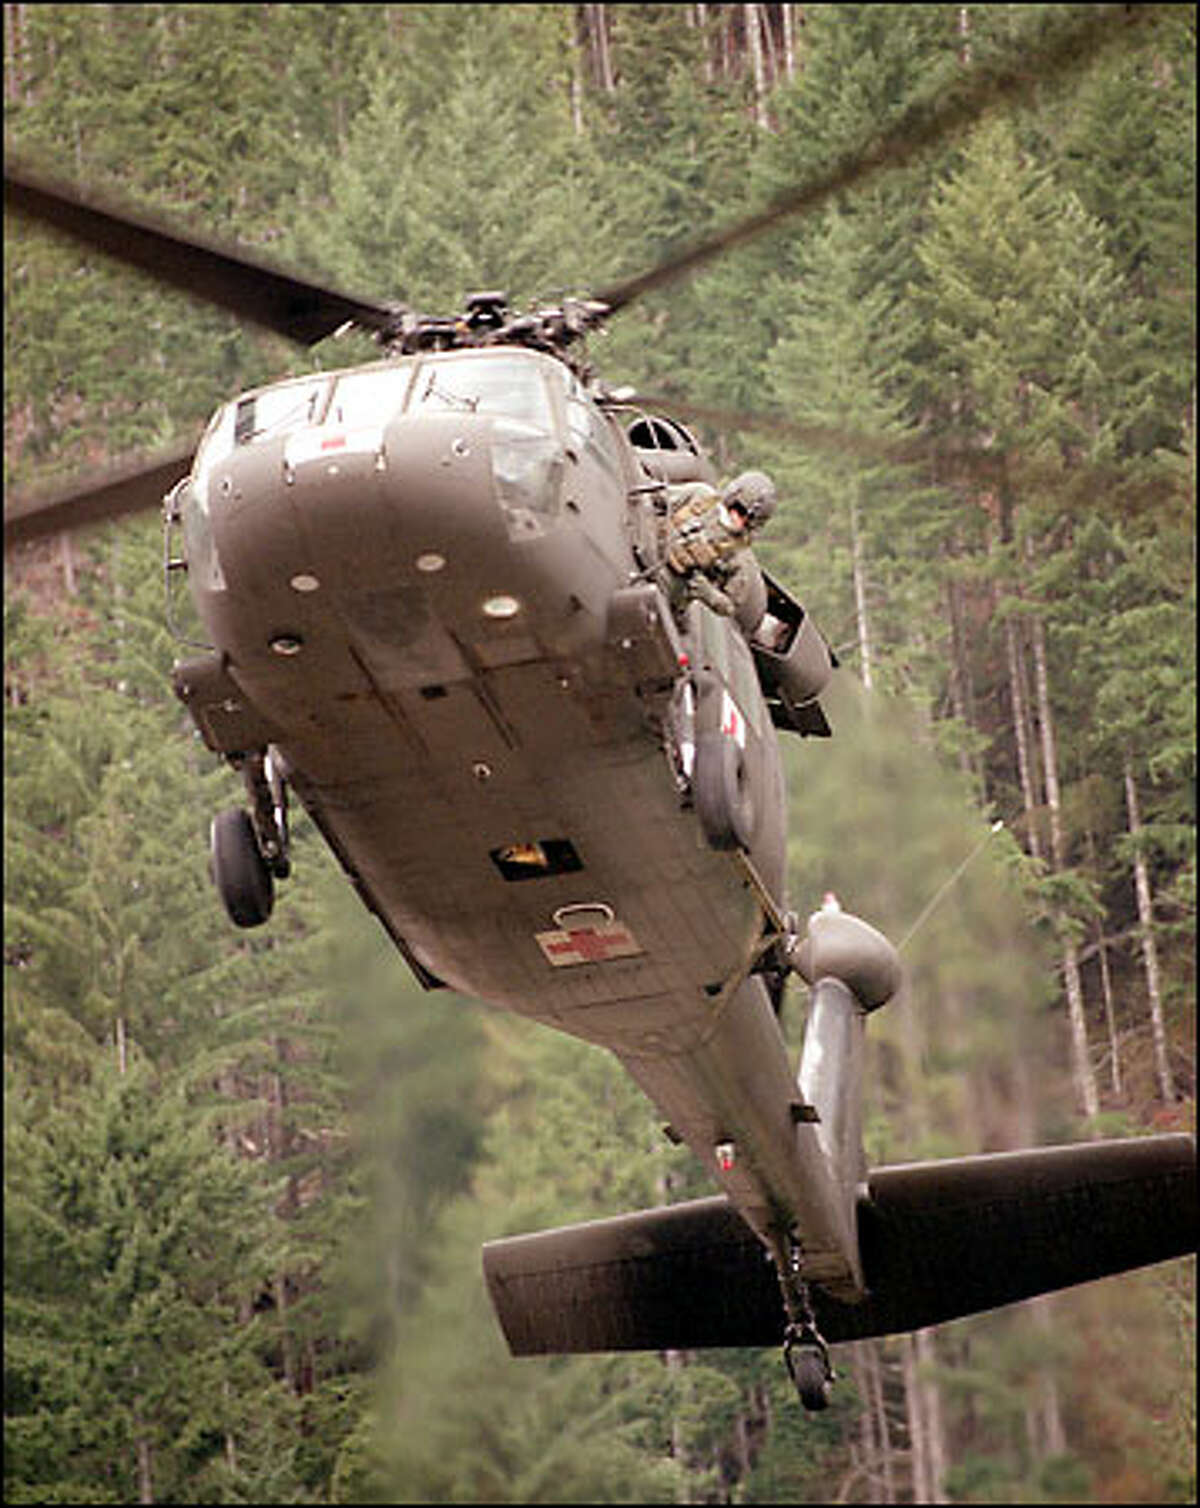 Sgt. Noah Harrison, US Army flight medic, makes sure the landing space below a 54th Medical Co. Blackhawk helicopter is clear during a Vision 2001 region training conference flying demonstration at the North Bend Fire Academy.